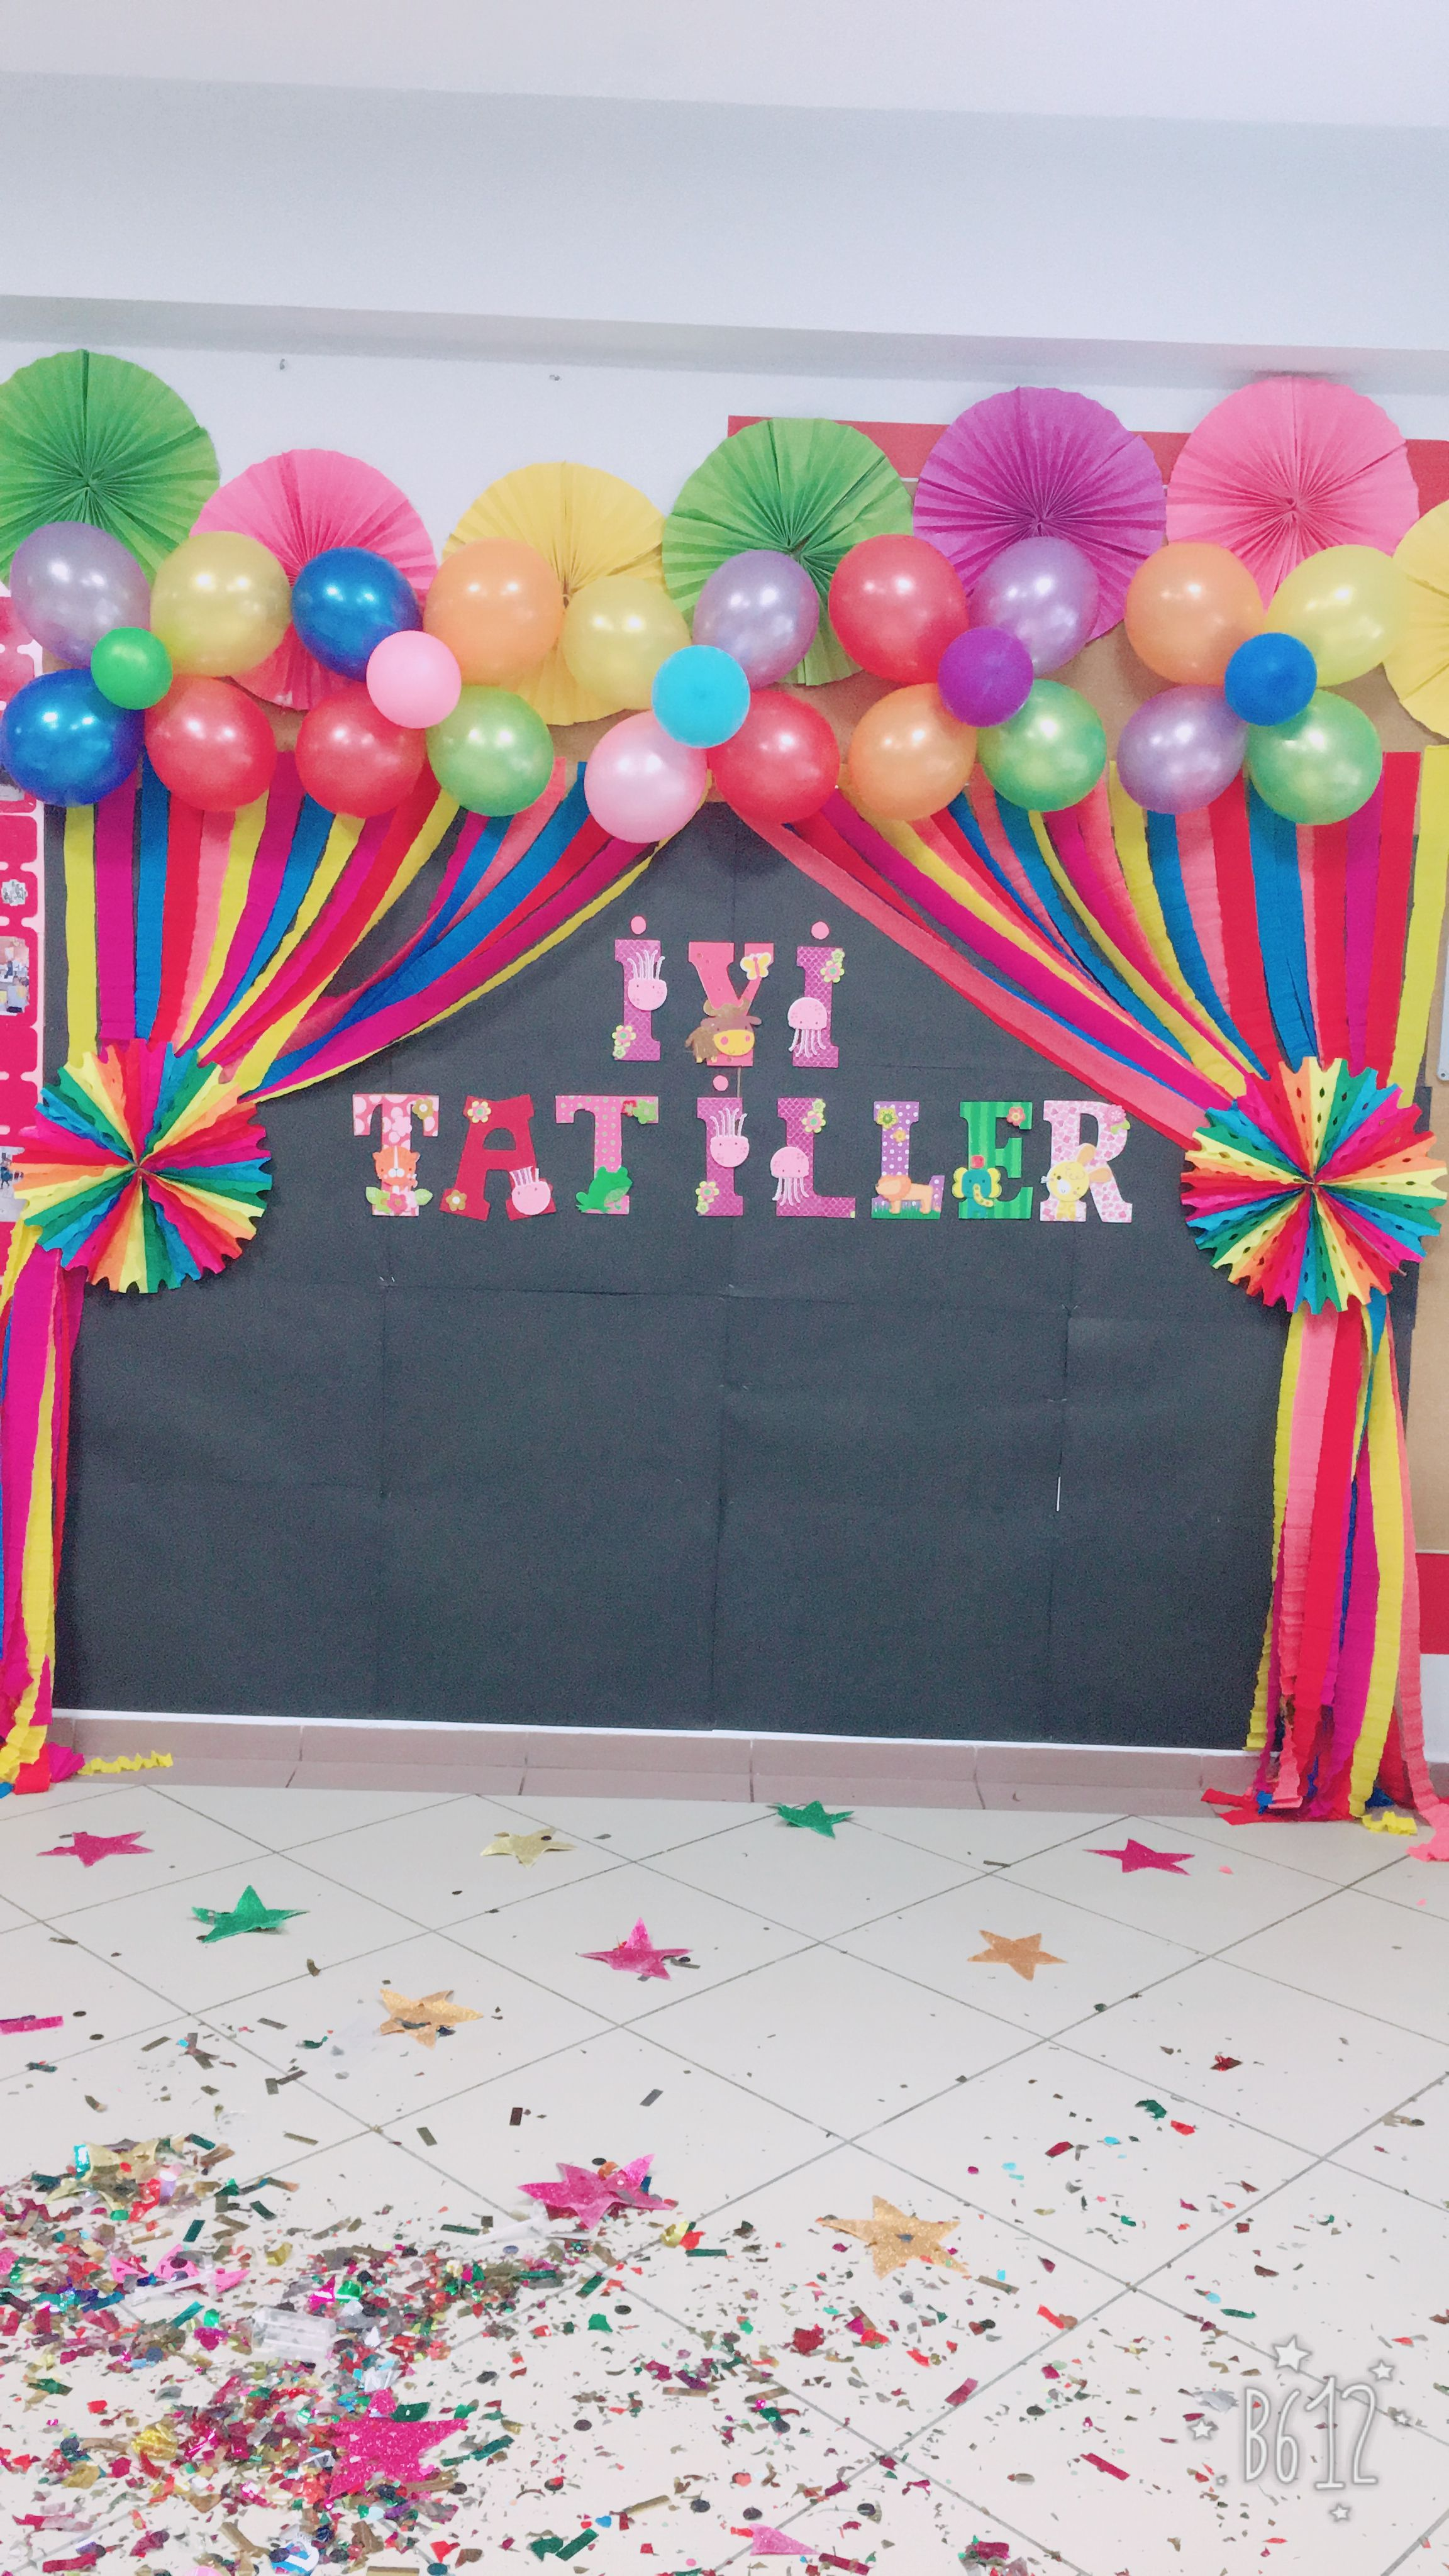 Karne panosu school decorations birthday party activities preschool paper crafts also simple room decoration for ma homie rh pinterest